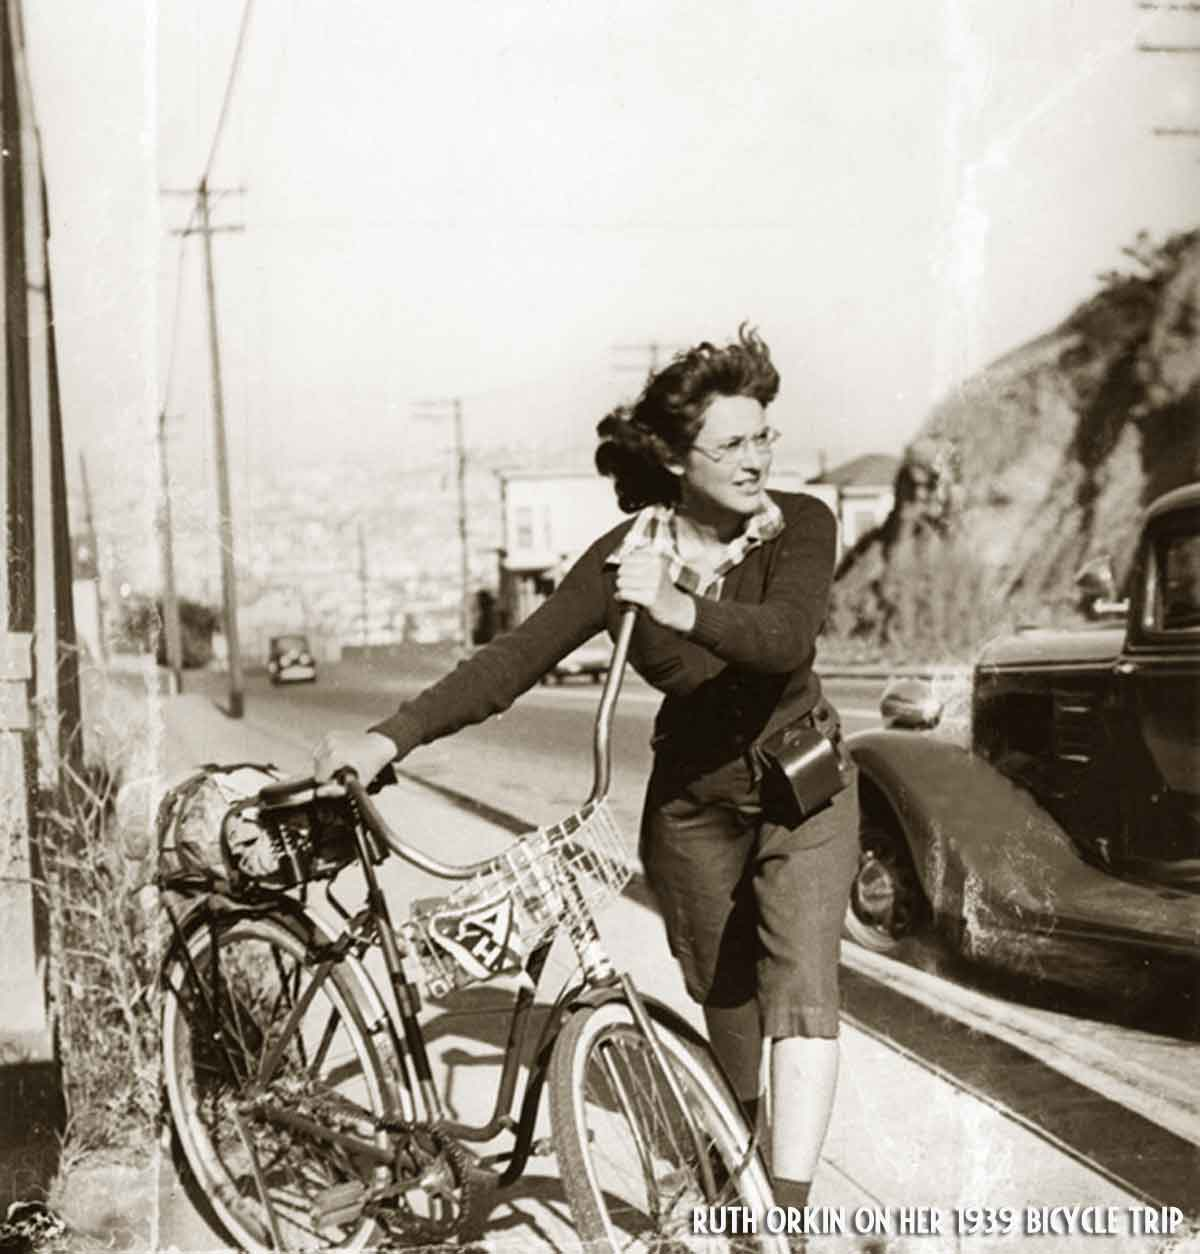 Ruth-Orkin-on-her-1939-bicycle-trip